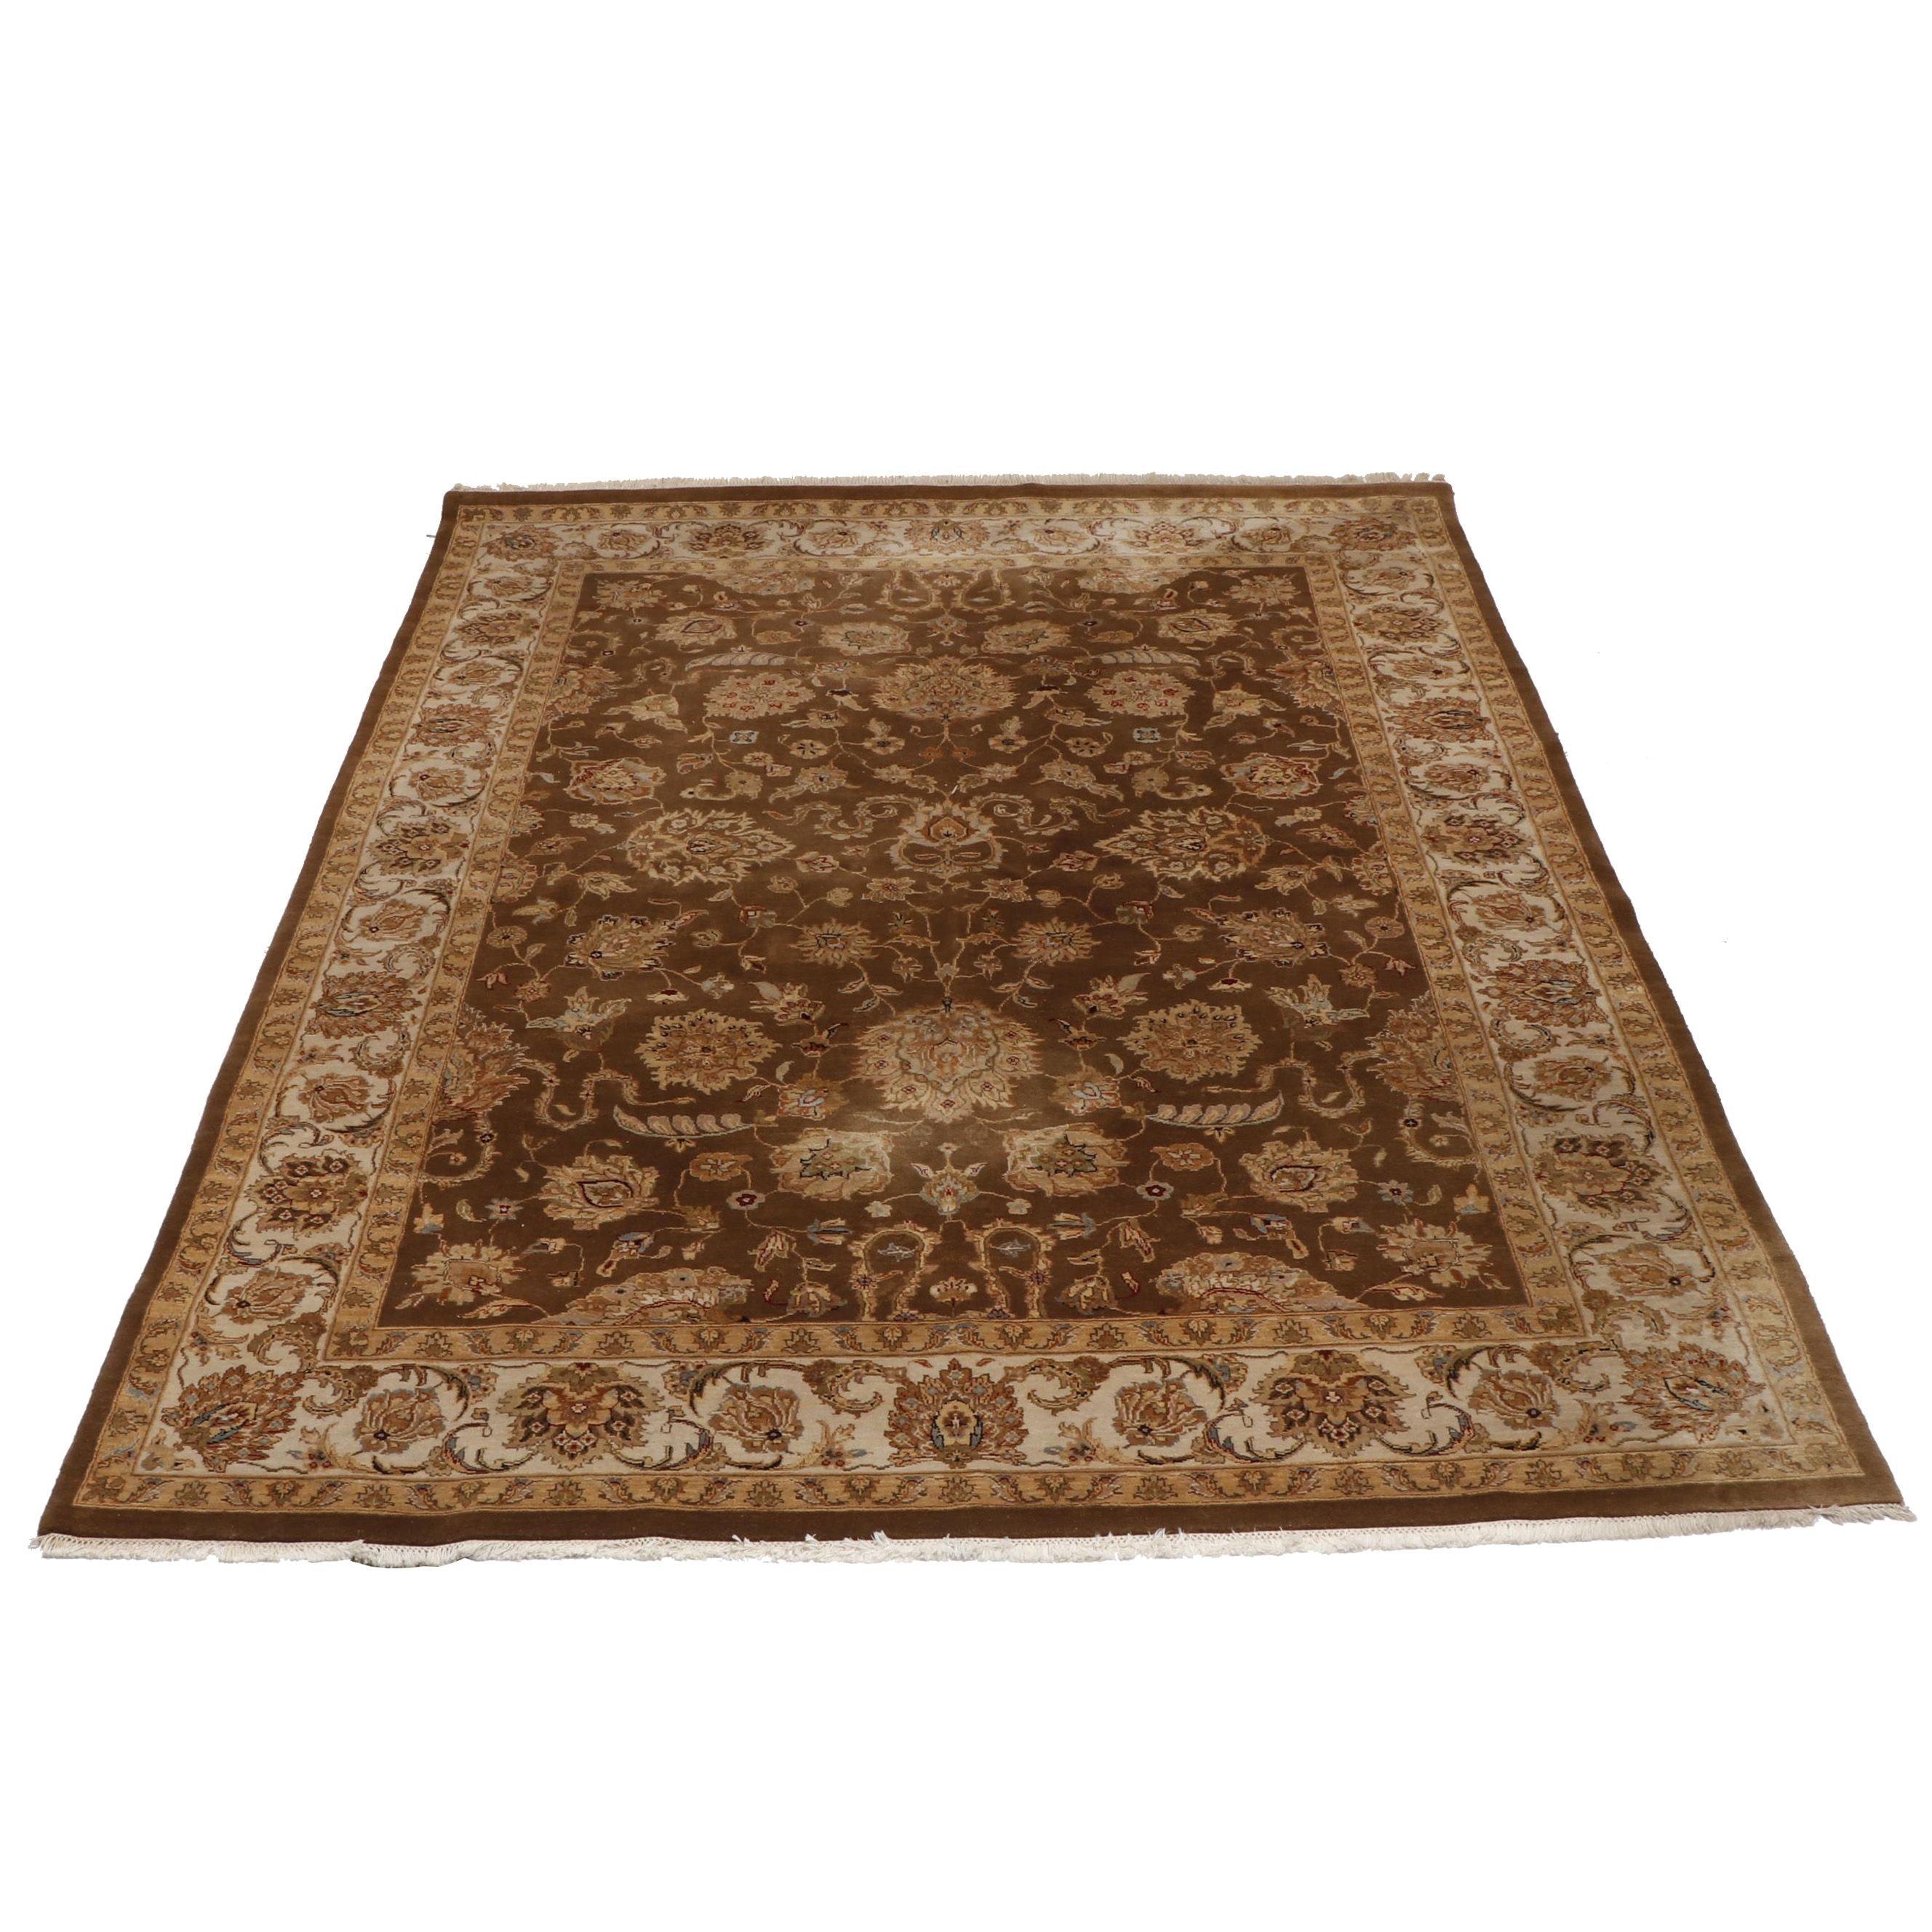 Hand-Knotted Indian Agra Wool Room Sized Rug